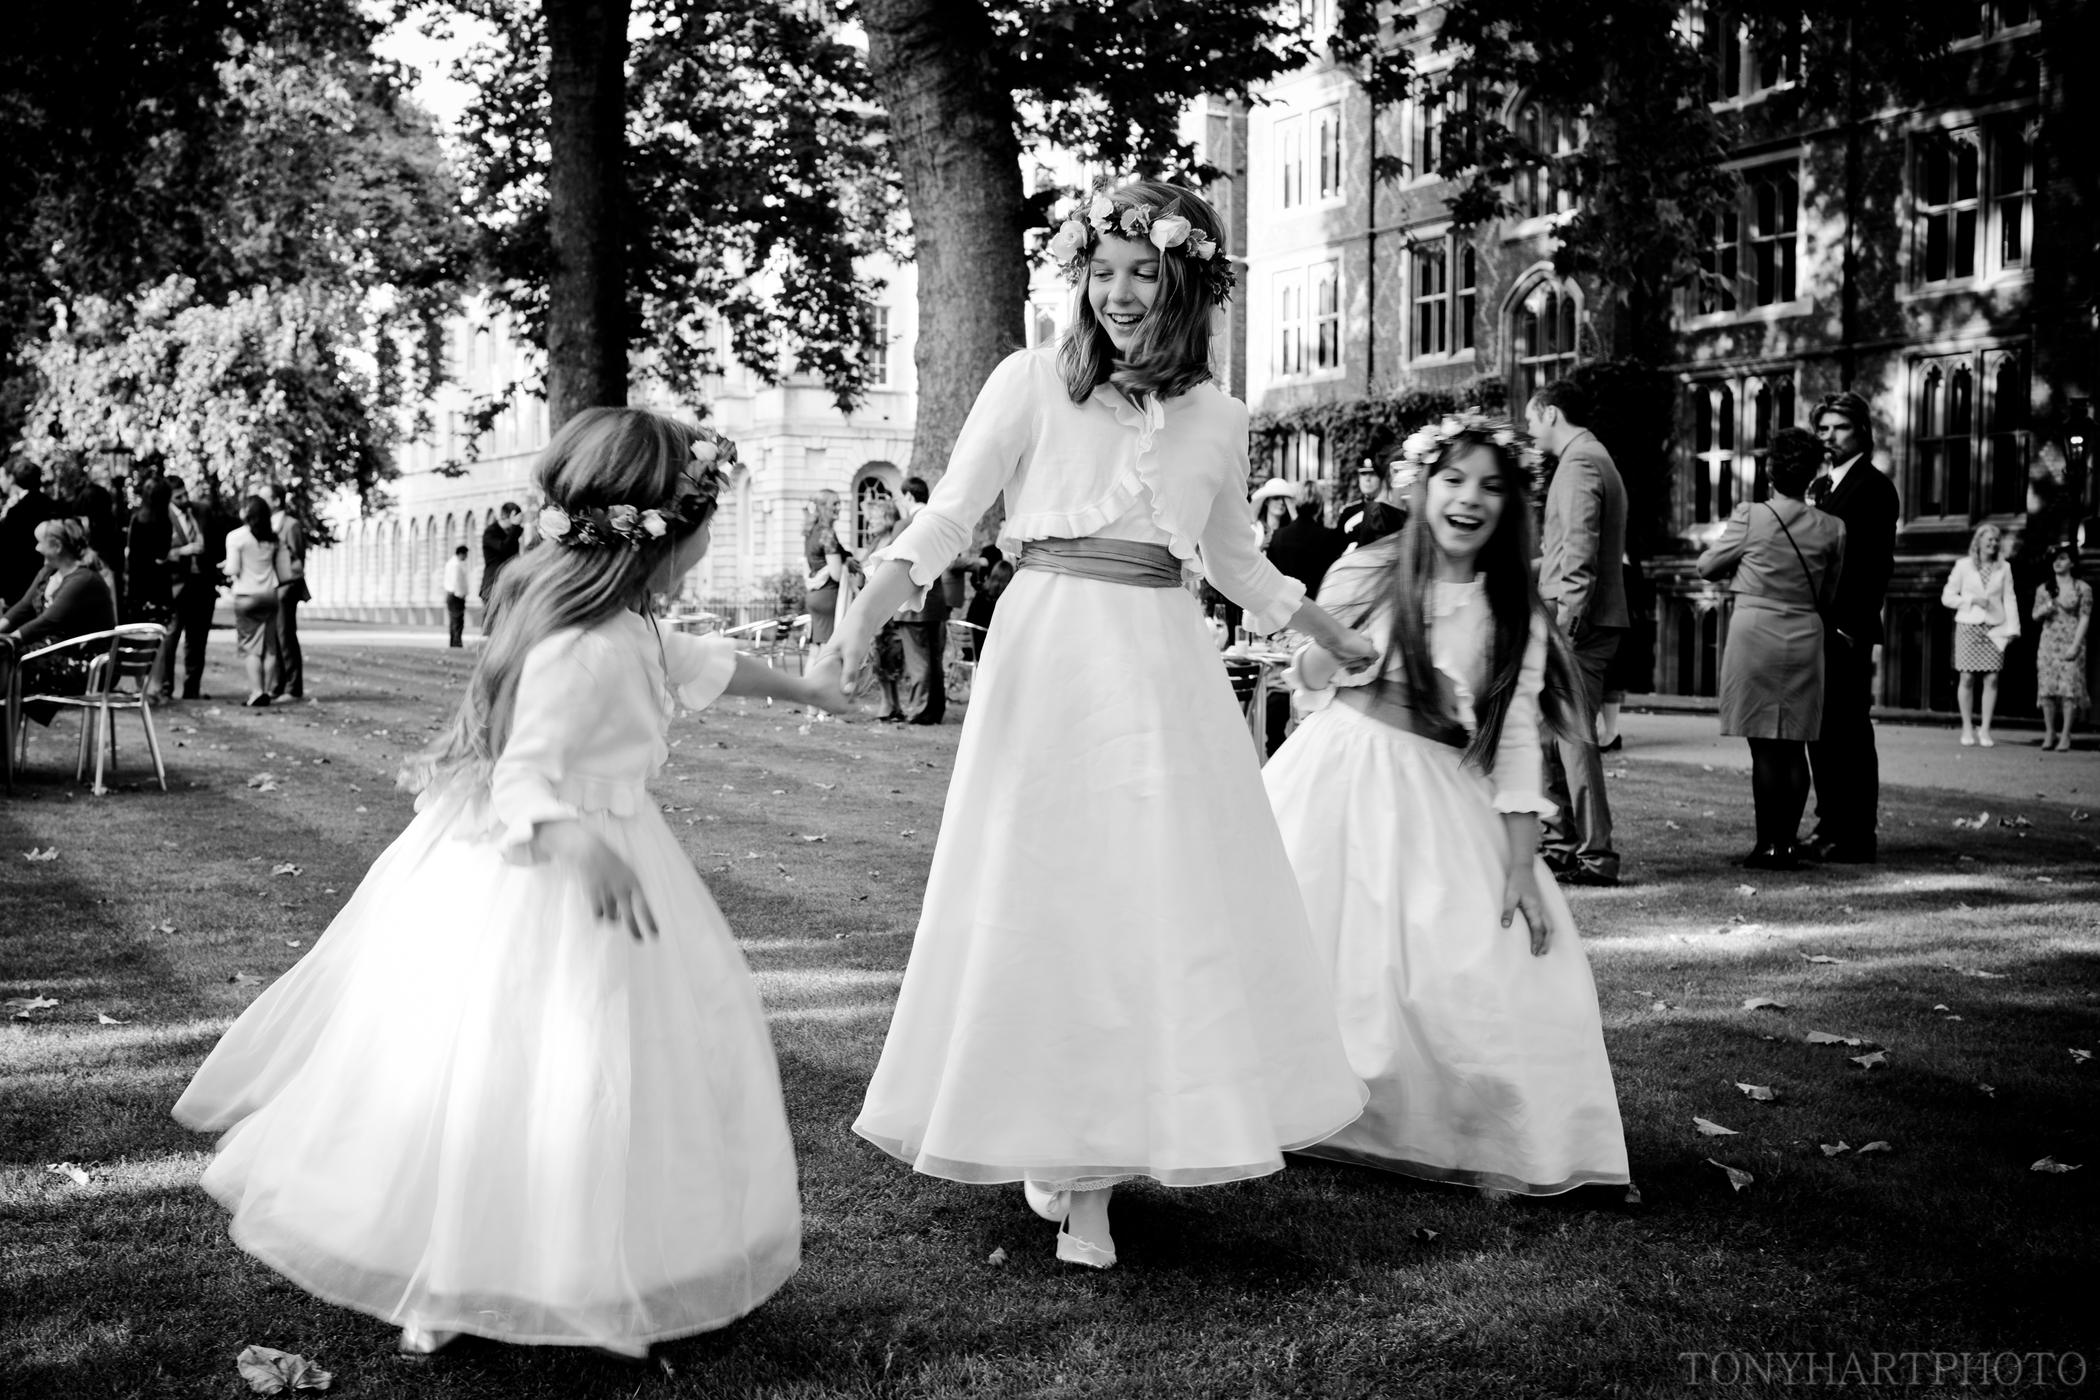 Bridesmaids playing at a Lincoln's Inn Fields wedding